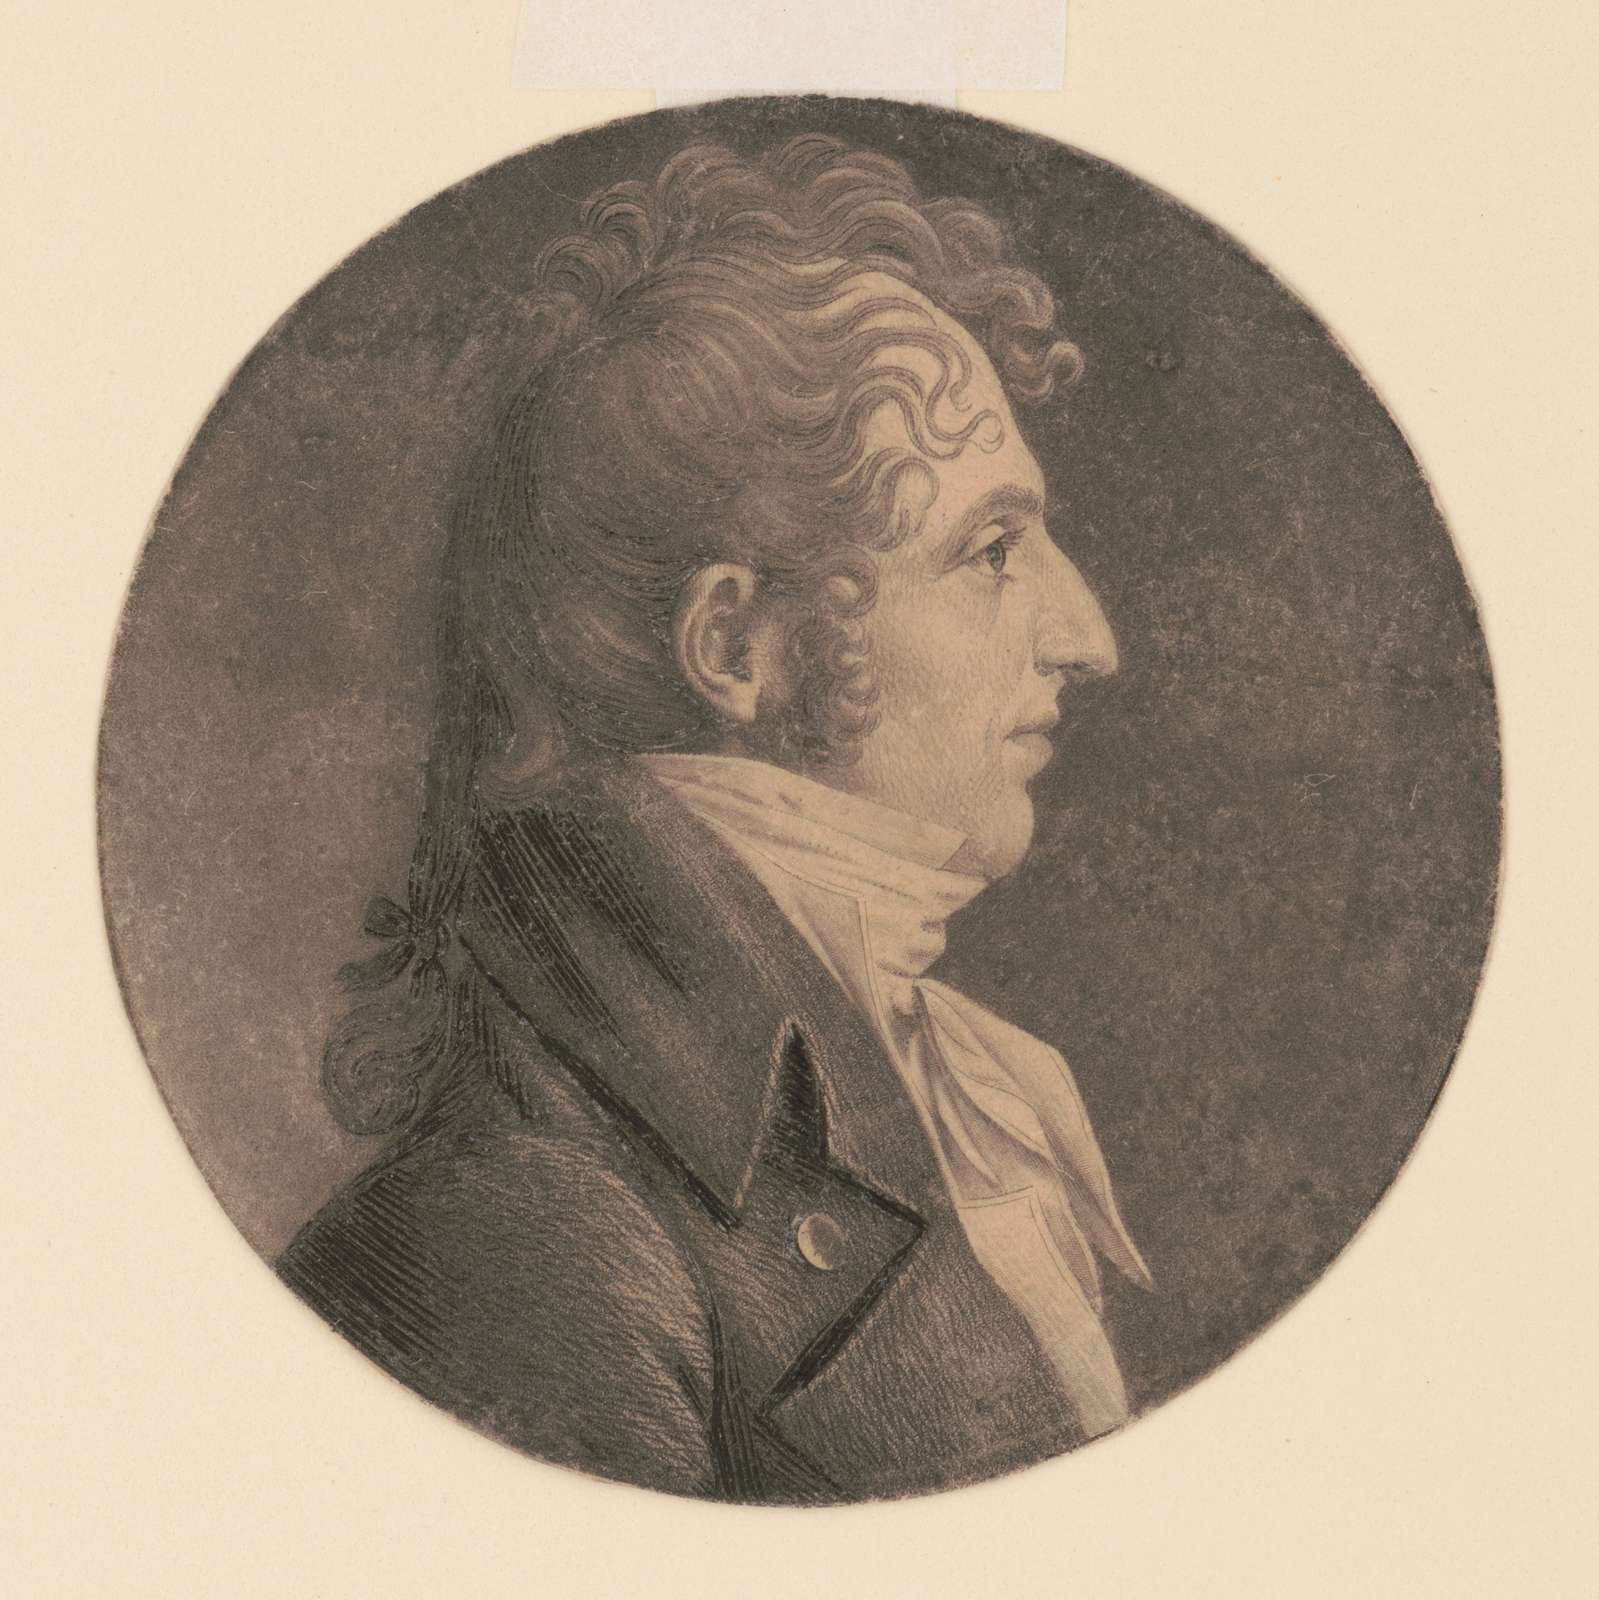 Edmund Wilcox Rootes, head-and-shoulders portrait, right profile